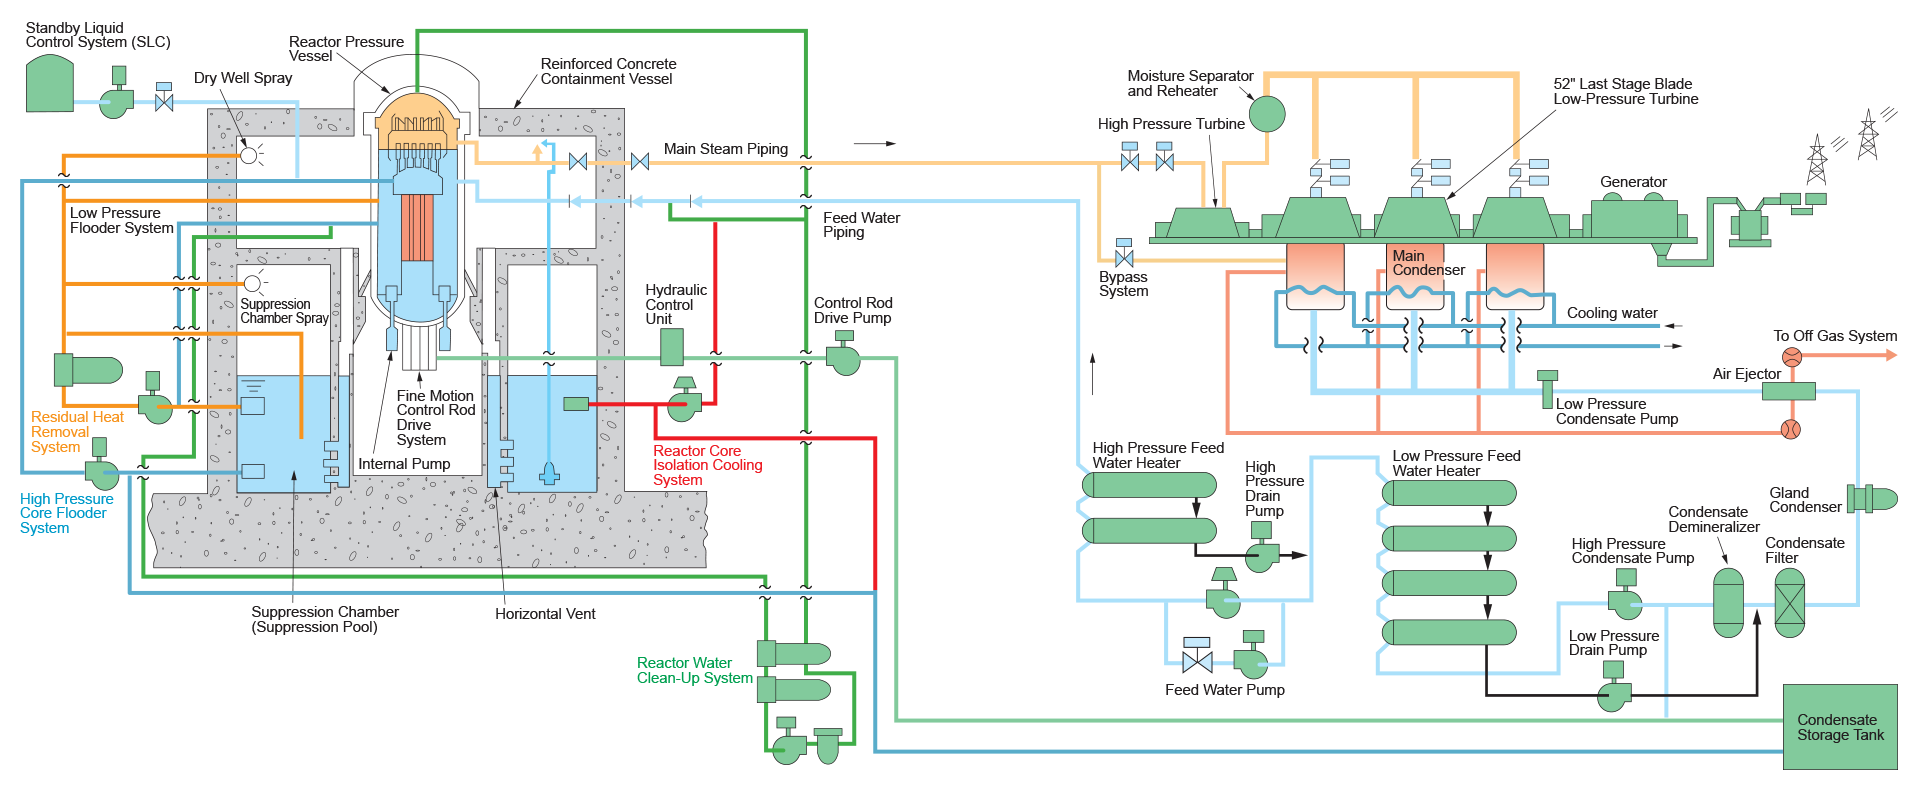 Advanced Boiling Water Reactor Flow Diagram